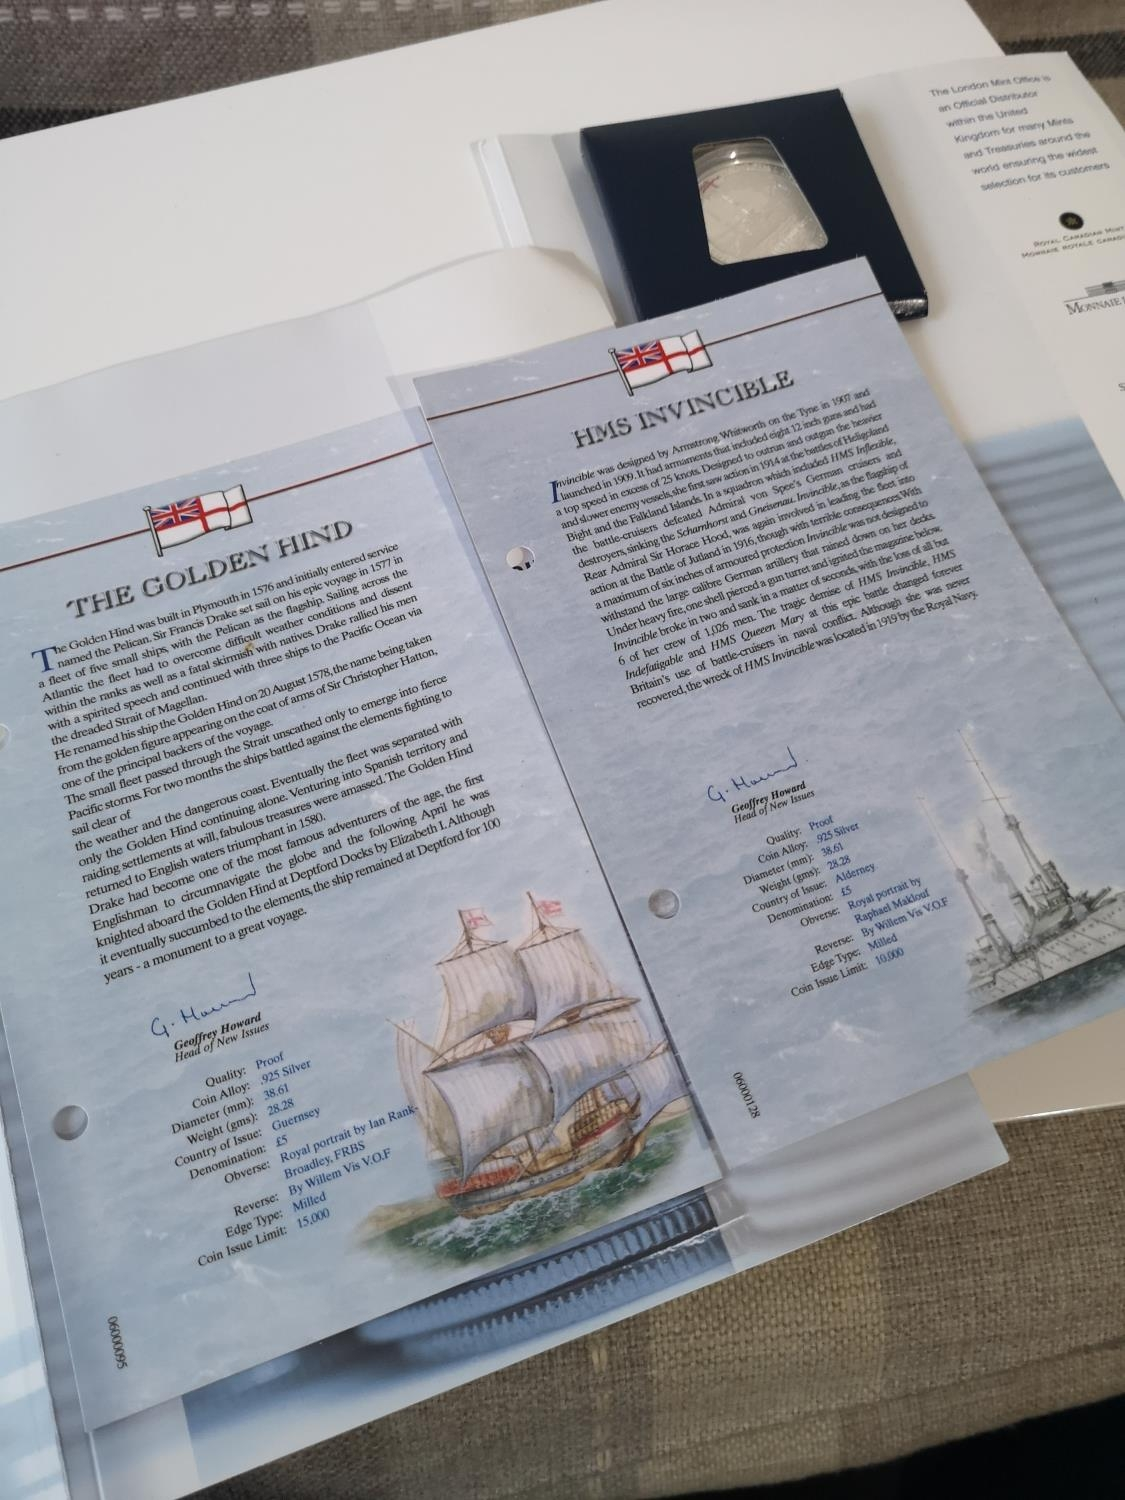 WO LONDON MINT OFFICE SILVER 925 PROOF NAVAL £5 COINS. INCLUDES THE GOLDEN HIND & HMS INVINCIBLE. - Image 2 of 2